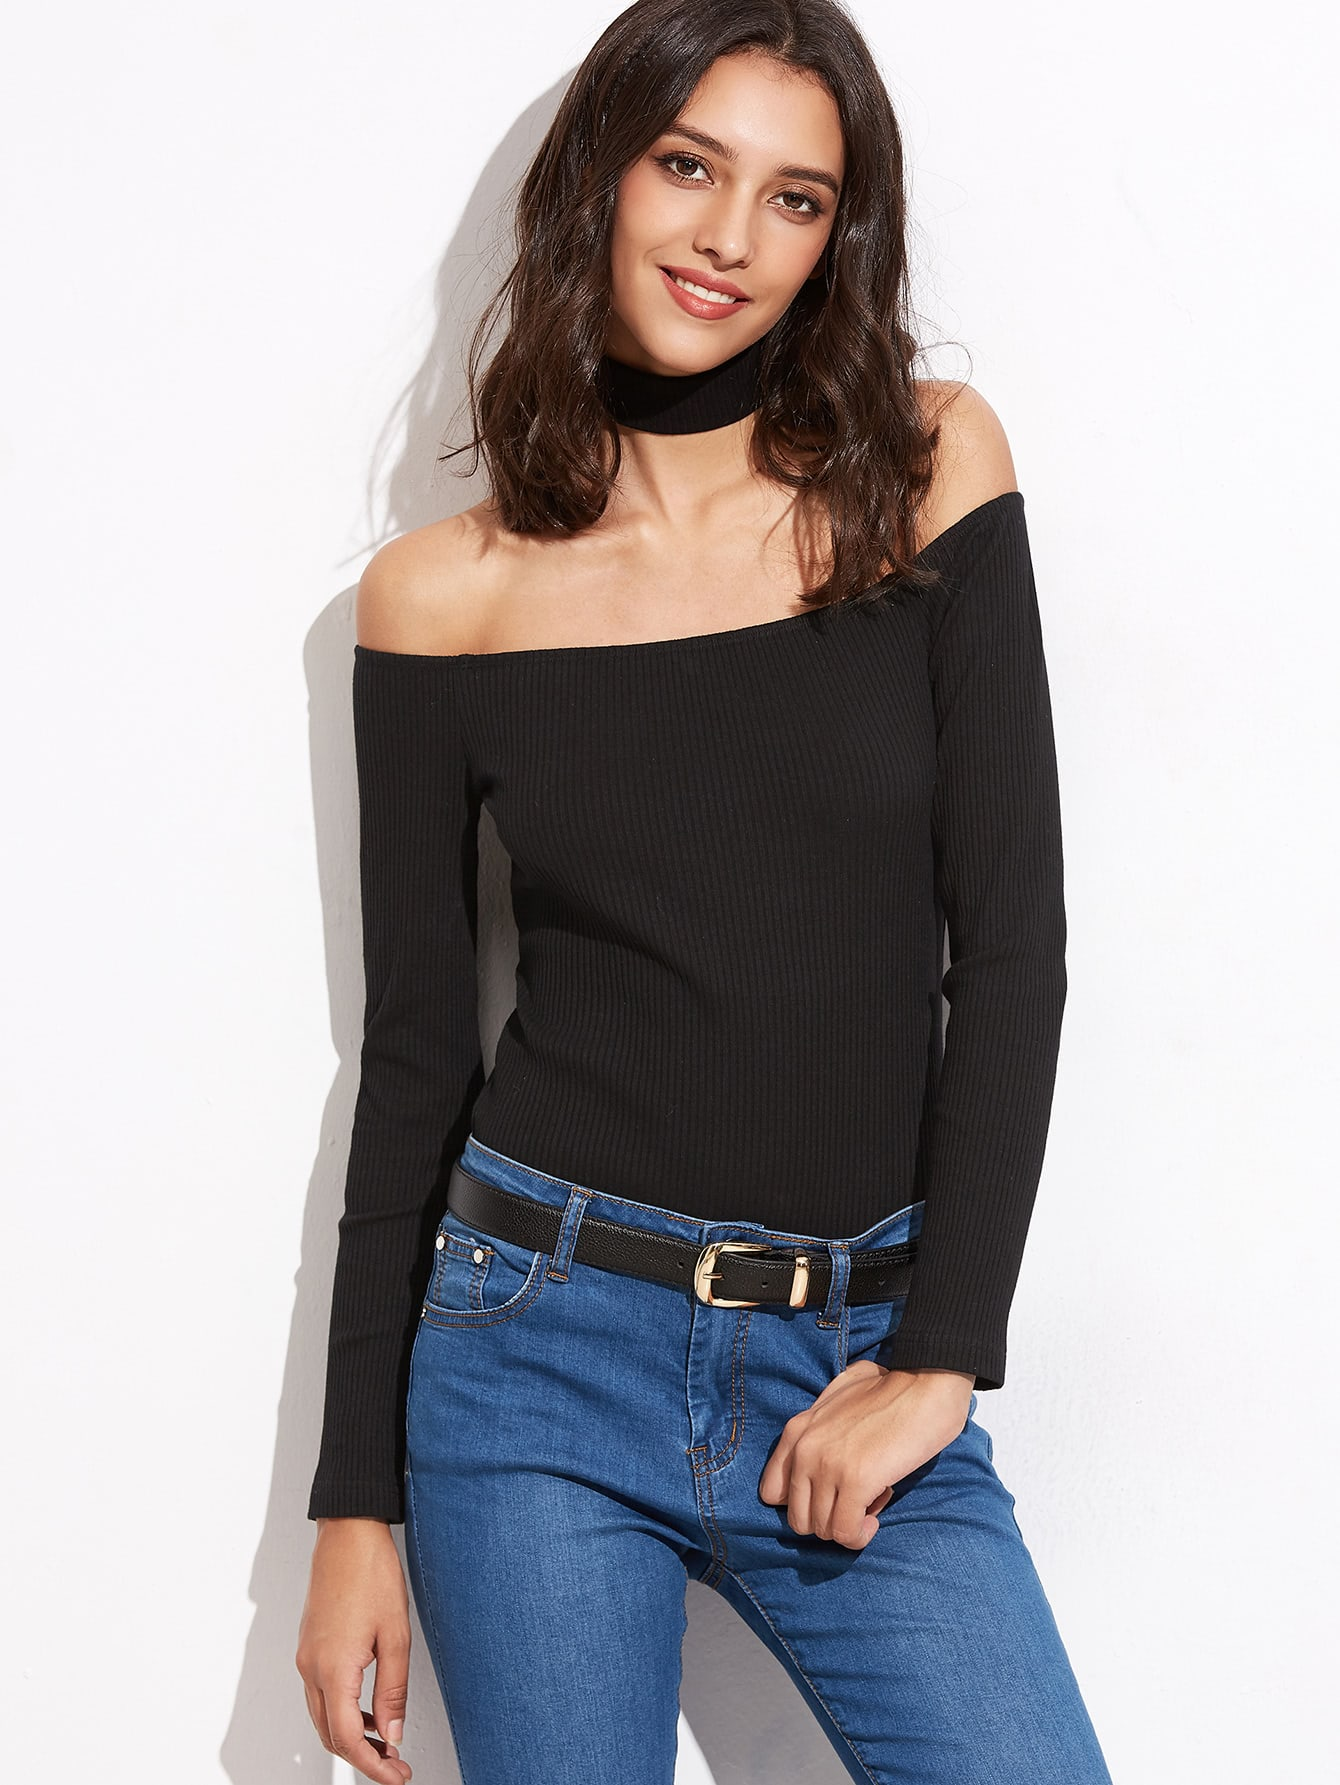 Black Off The Shoulder Ribbed T-shirt With Choker tee160829702